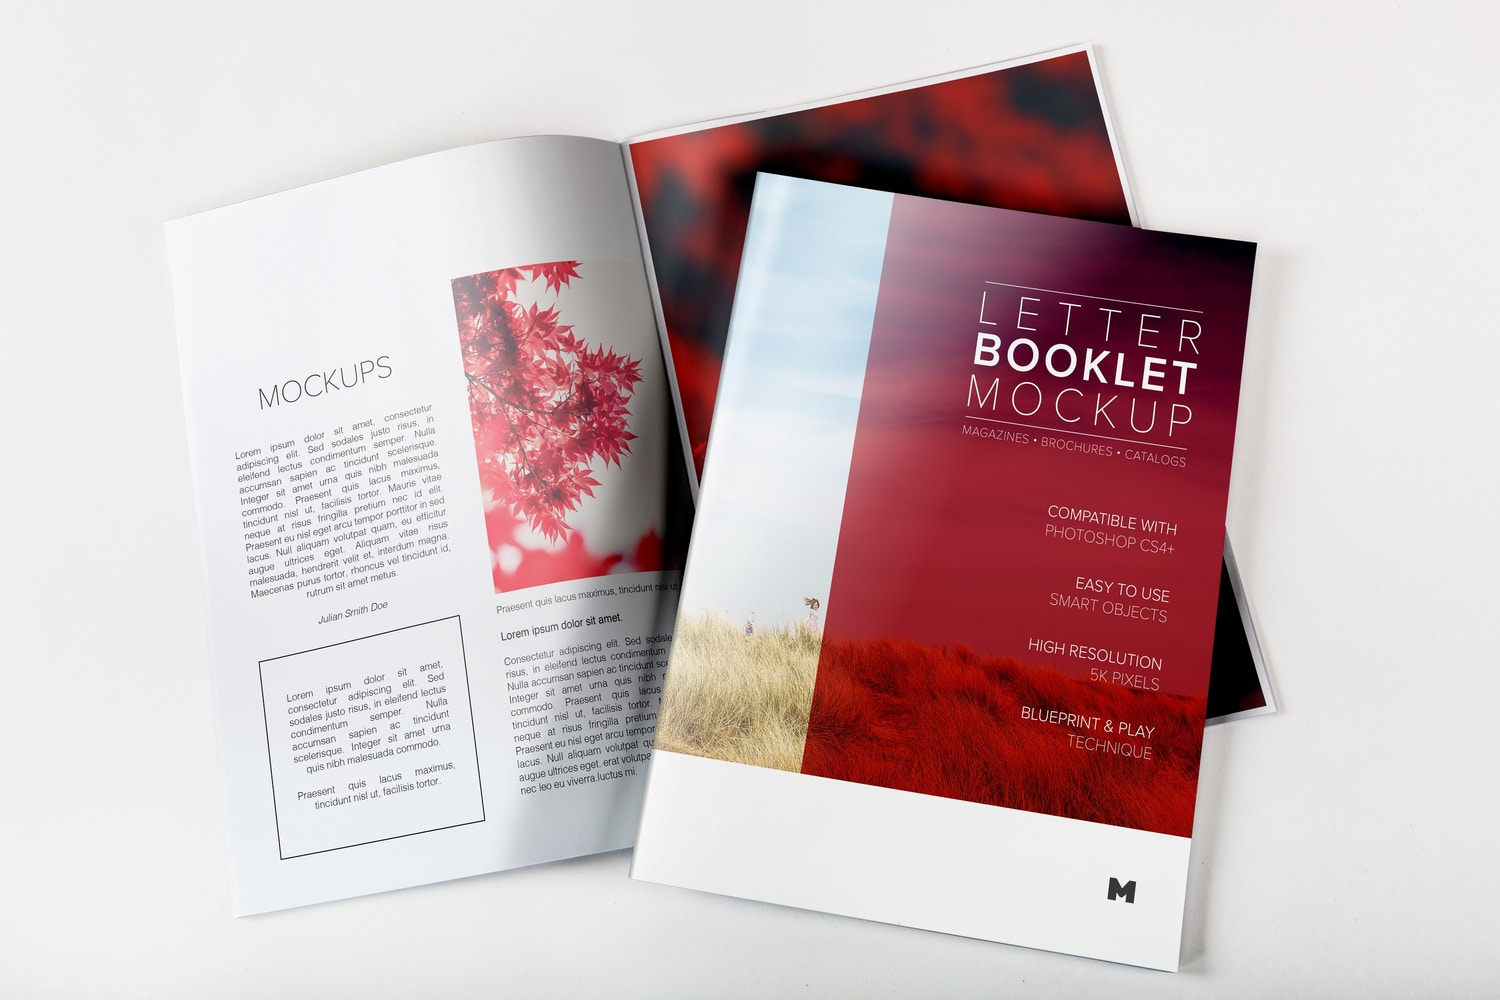 Letter Booklet Cover & Spread Mockup by Original Mockups on Original Mockups